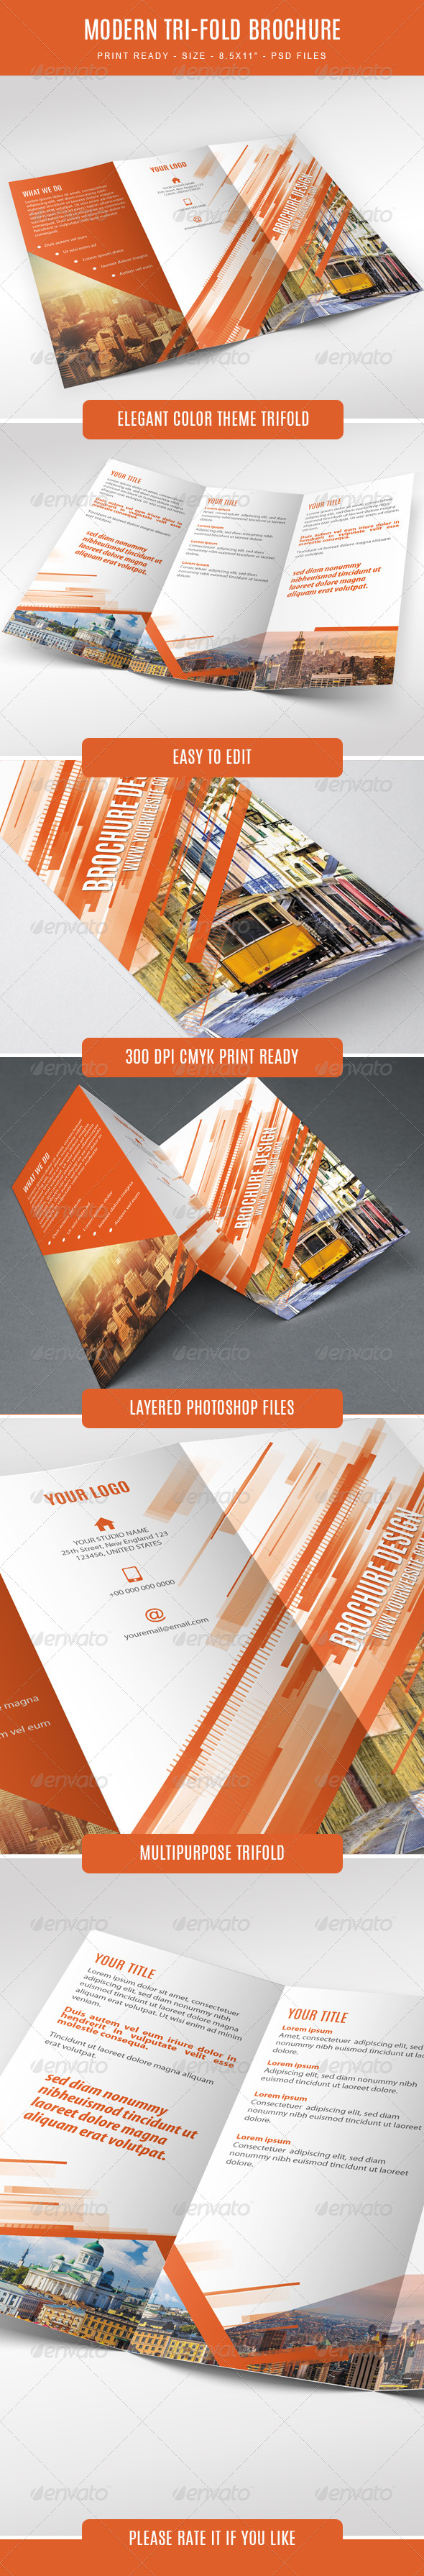 GraphicRiver Modern Trifold Brochure 7634542